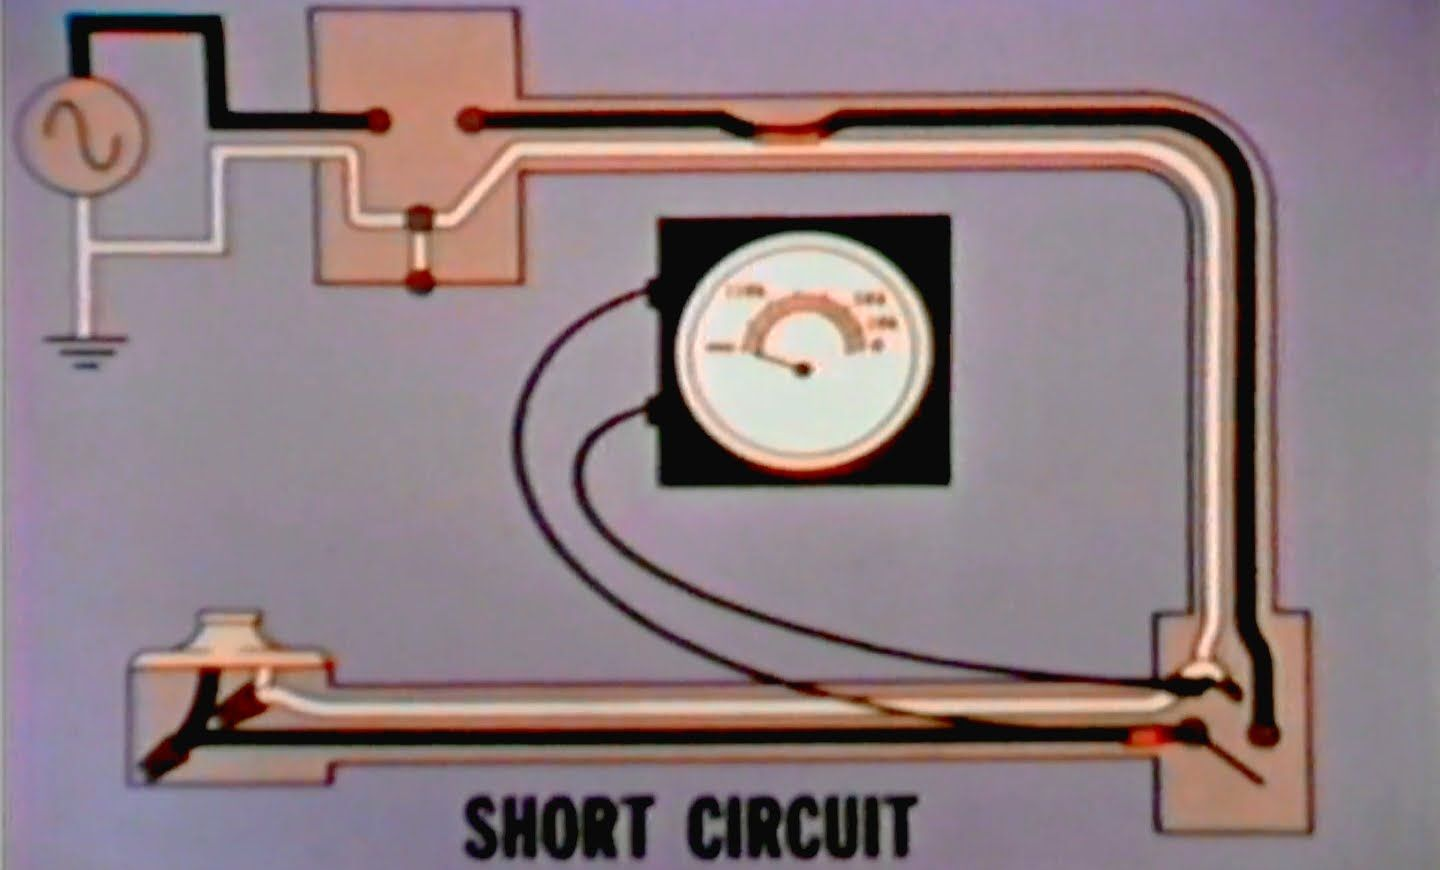 Basic Electrical Repair Troubleshooting Electric Circuits 1968 Us Wiring Youtube Air Force Training Film Https